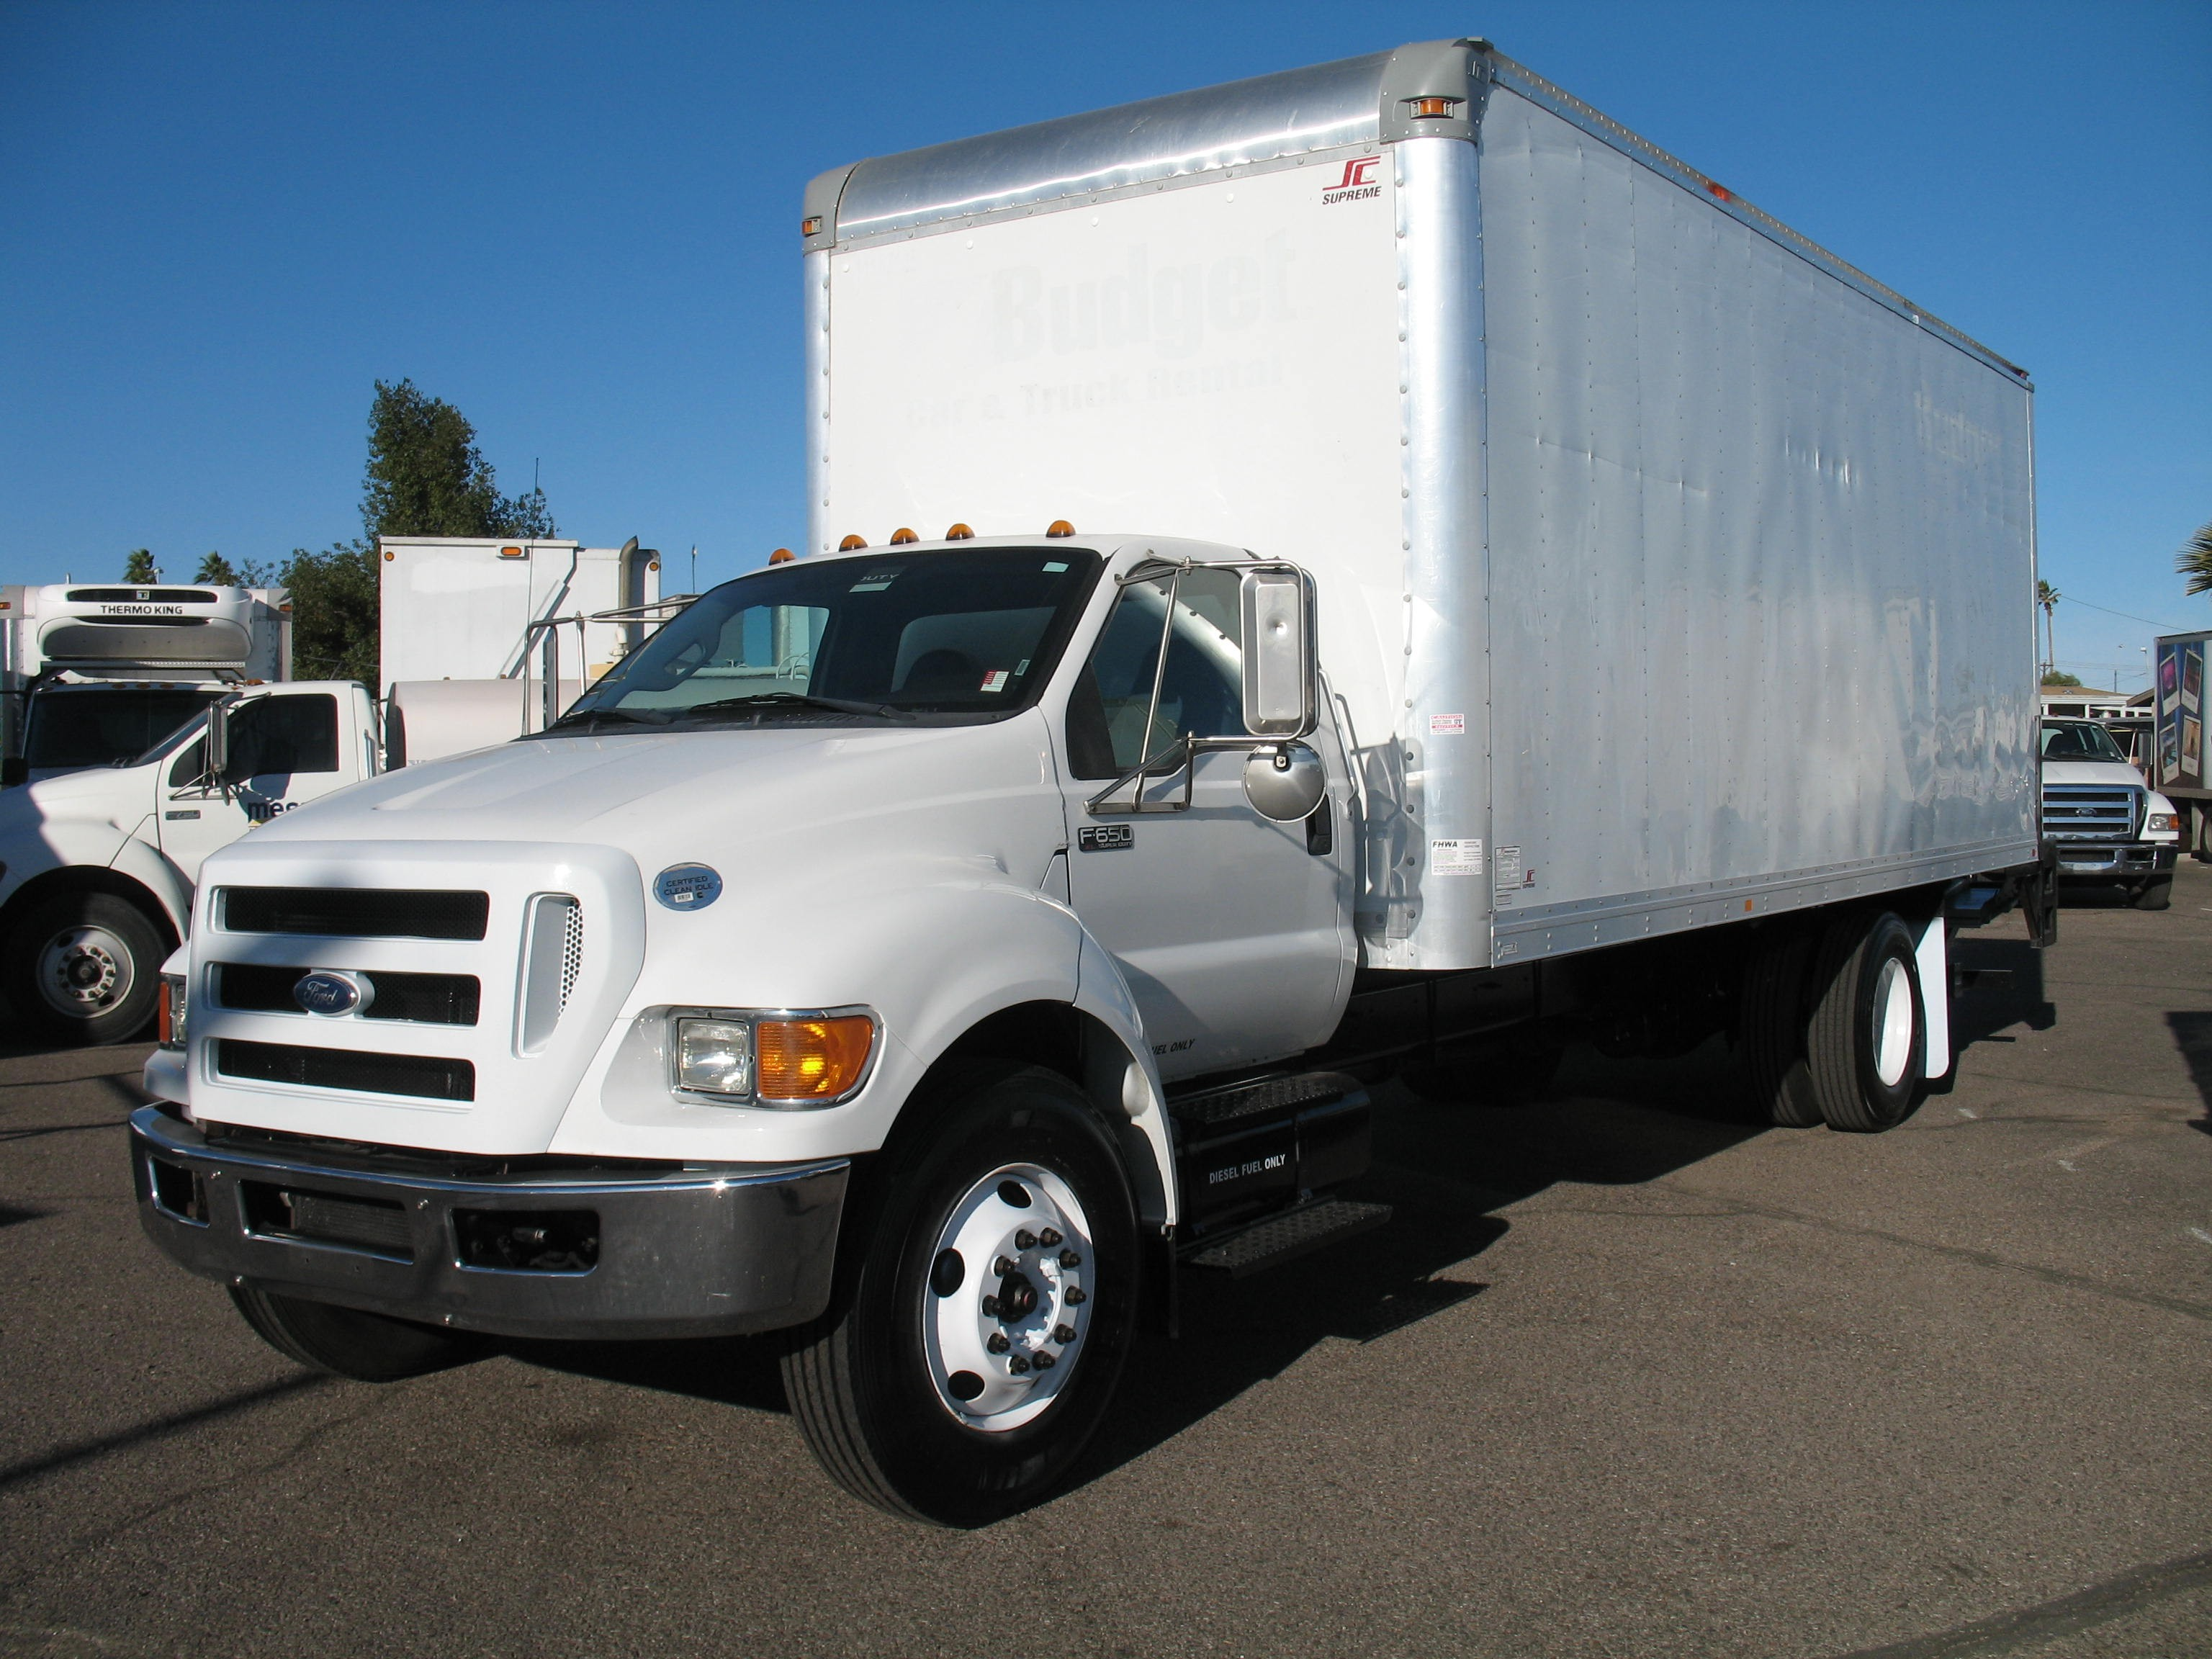 Used, 2011, Ford, F-650 SD XL, Van Trucks